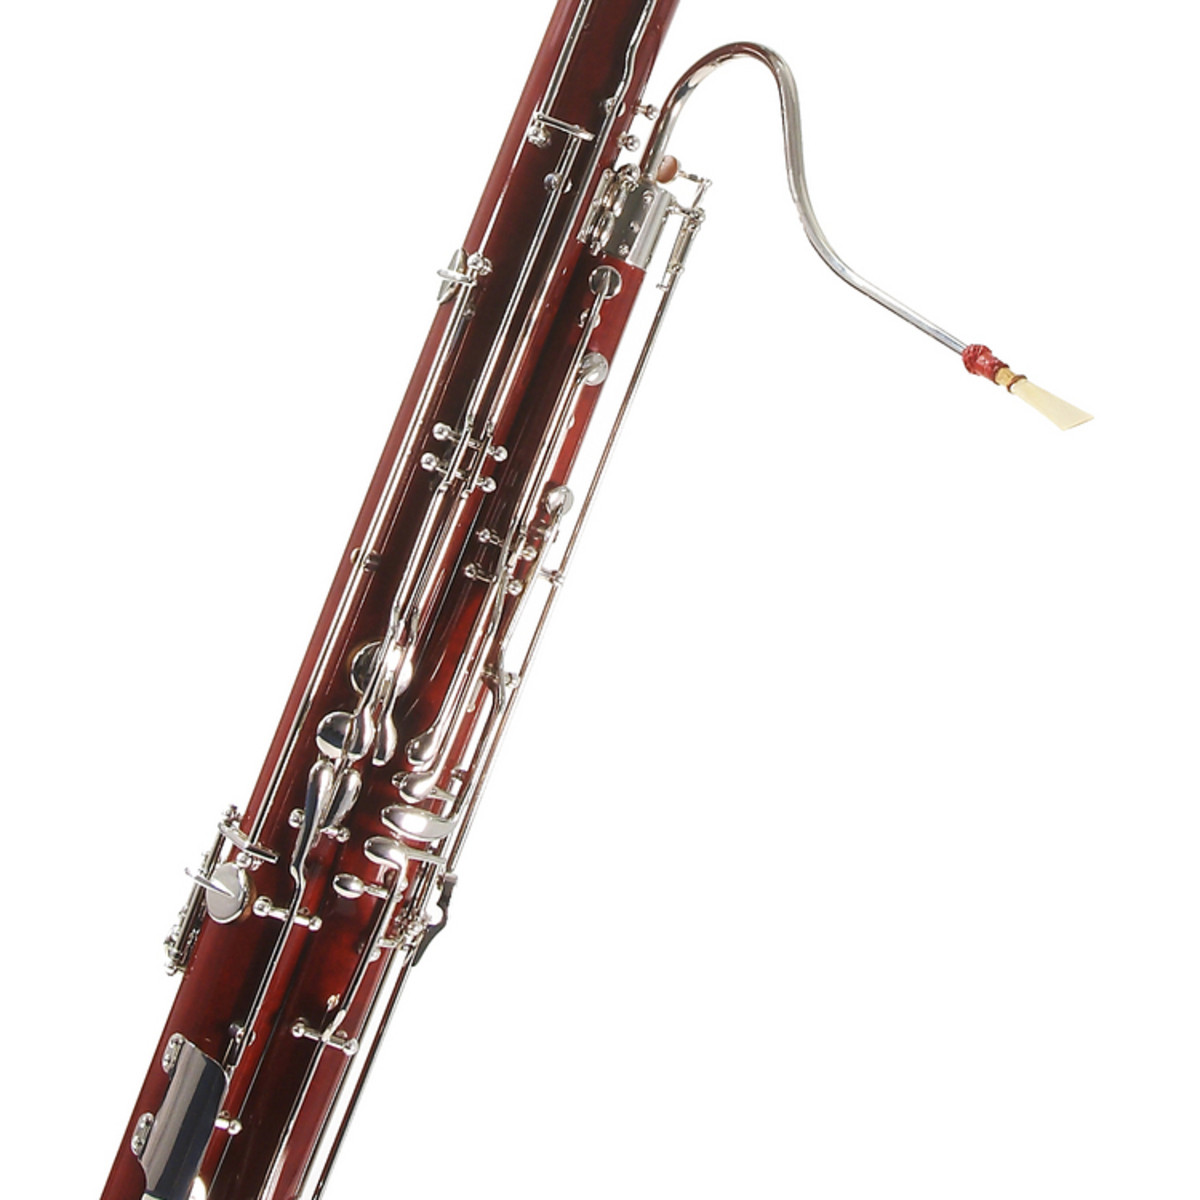 Deluxe Bassoon by Gear4music